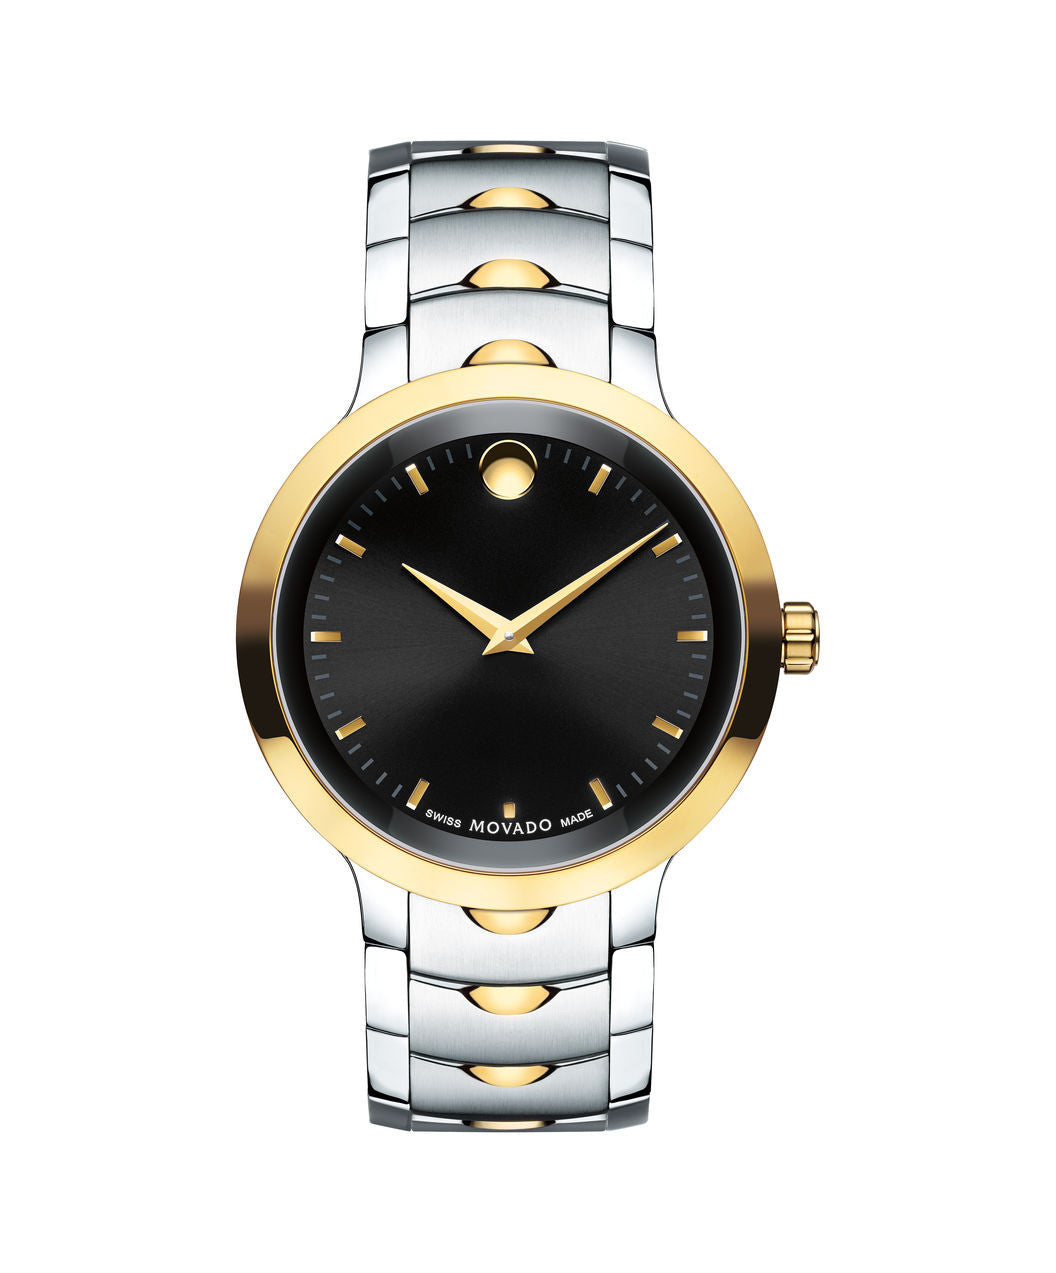 Movado Men's Luno Watch, 40 mm Yellow Gold PVD & Stainless Steel 0607043 - Arnik Jewellers